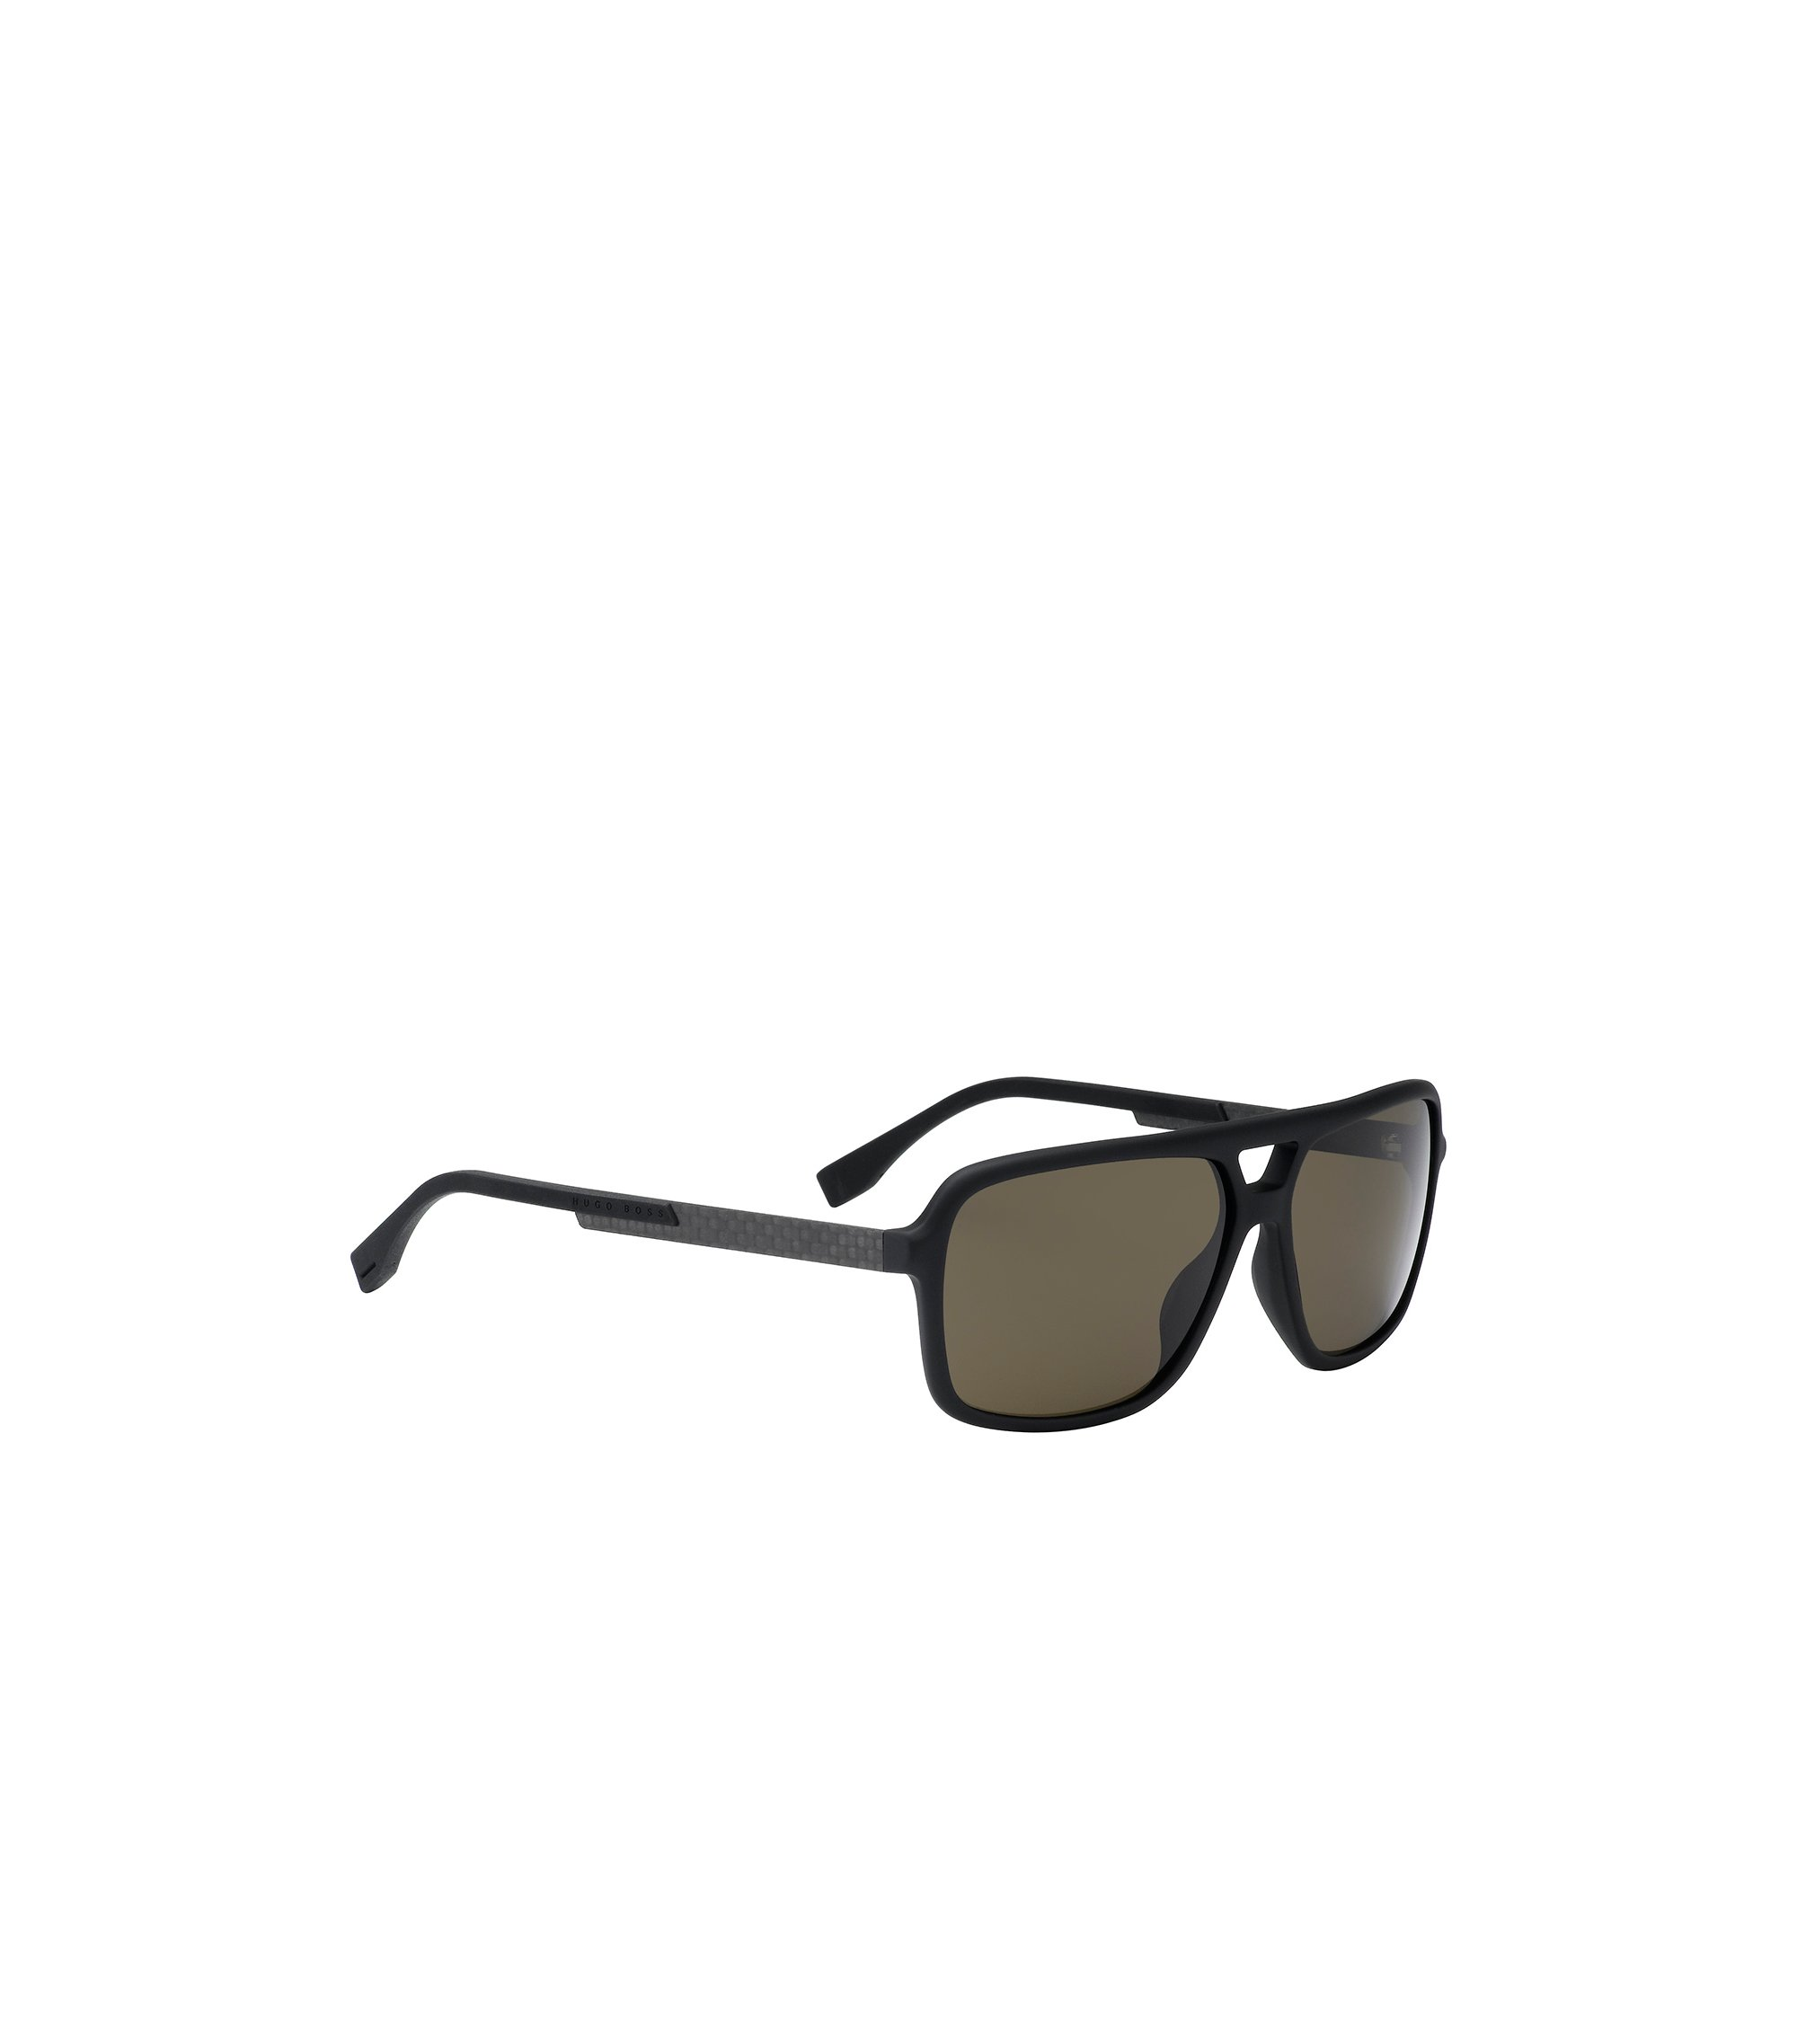 Brown Grey Lens Navigator Sunglasses | BOSS 0772S, Assorted-Pre-Pack